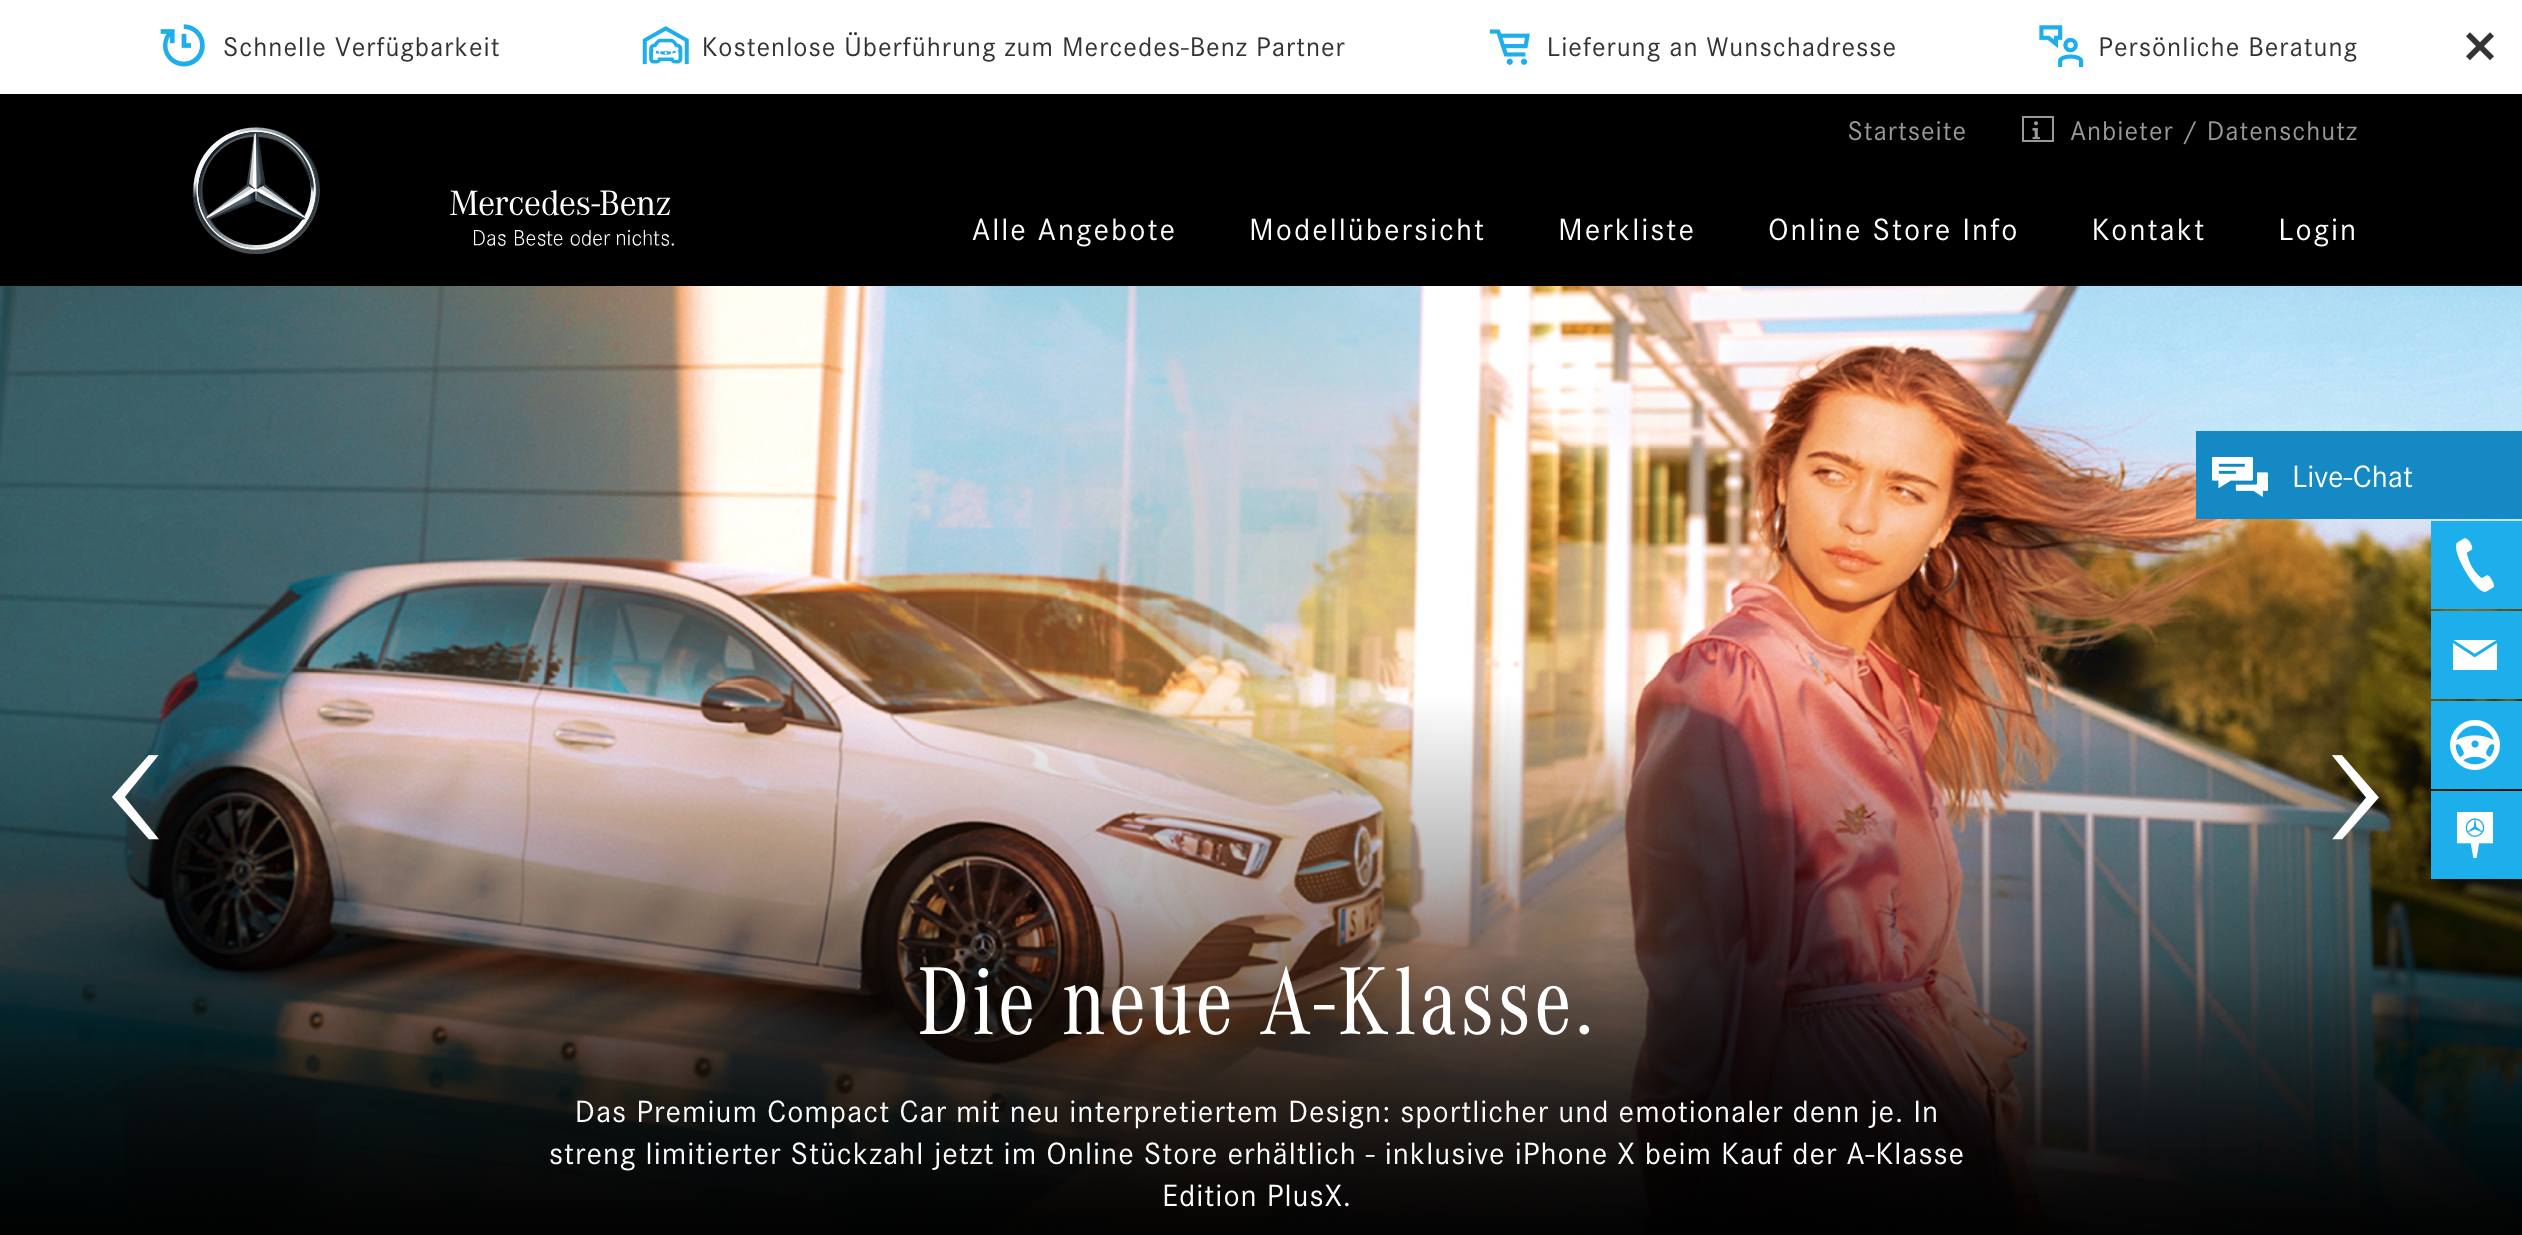 Screenshot of Mercedes website with live chat.